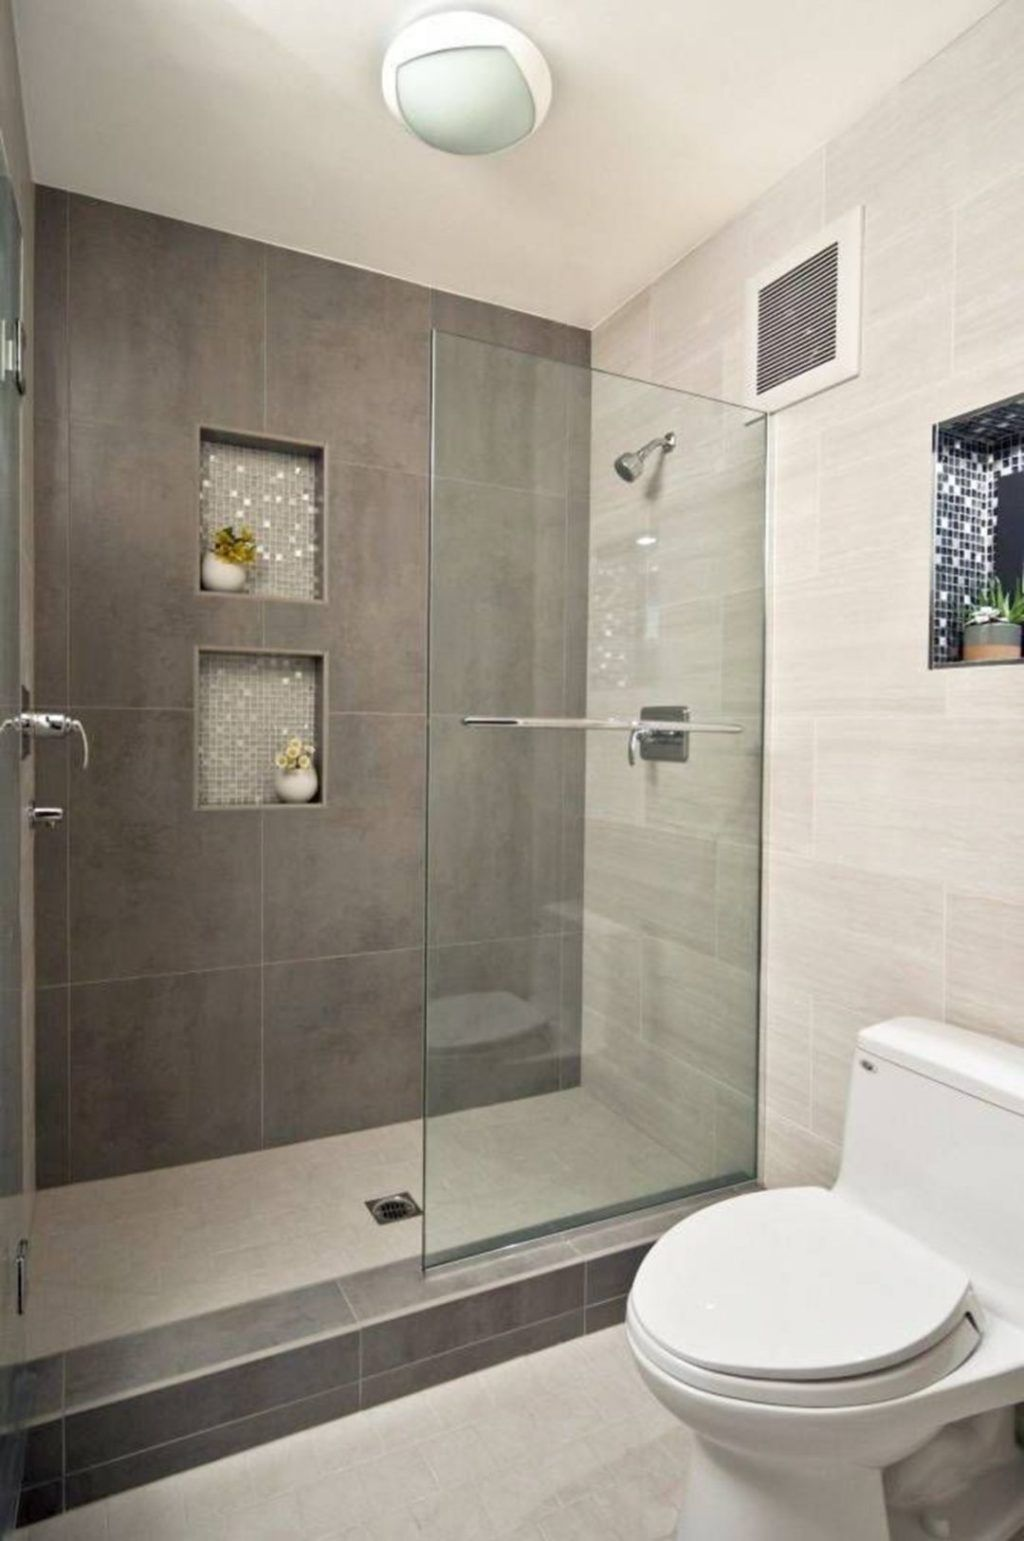 20 Gorgeous Small Bathroom With Walk-In Shower for Small ...